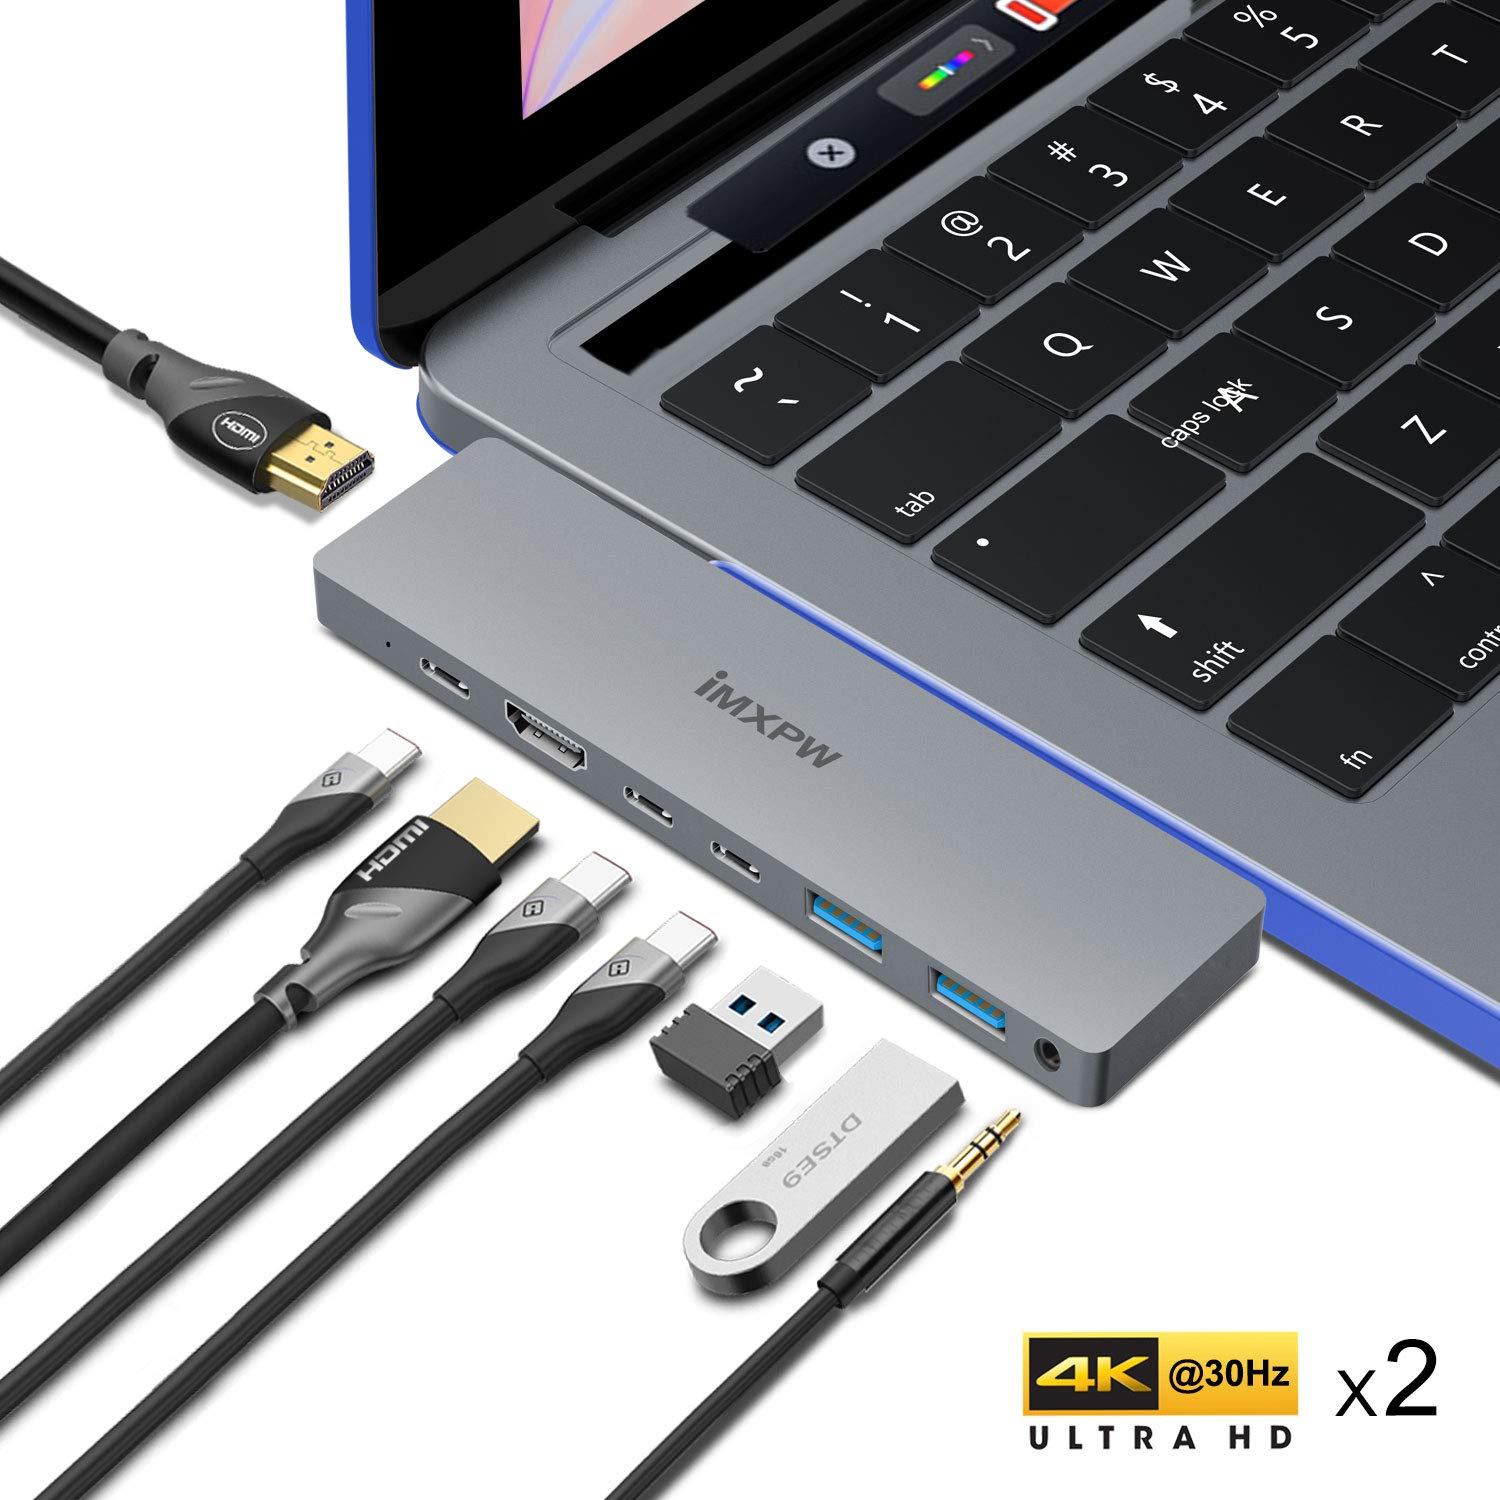 USB C Hub, USB C to 2HDMI Multiport Adapter Compatible MacBook pro 13''/15'', Mac Pro Adapter w/Pass-Through Charging Port, 2 USB C Data,2 HDMI, 2 USB 3.0, 3.5mm Audio Jack 8 in 1 by iMXPW